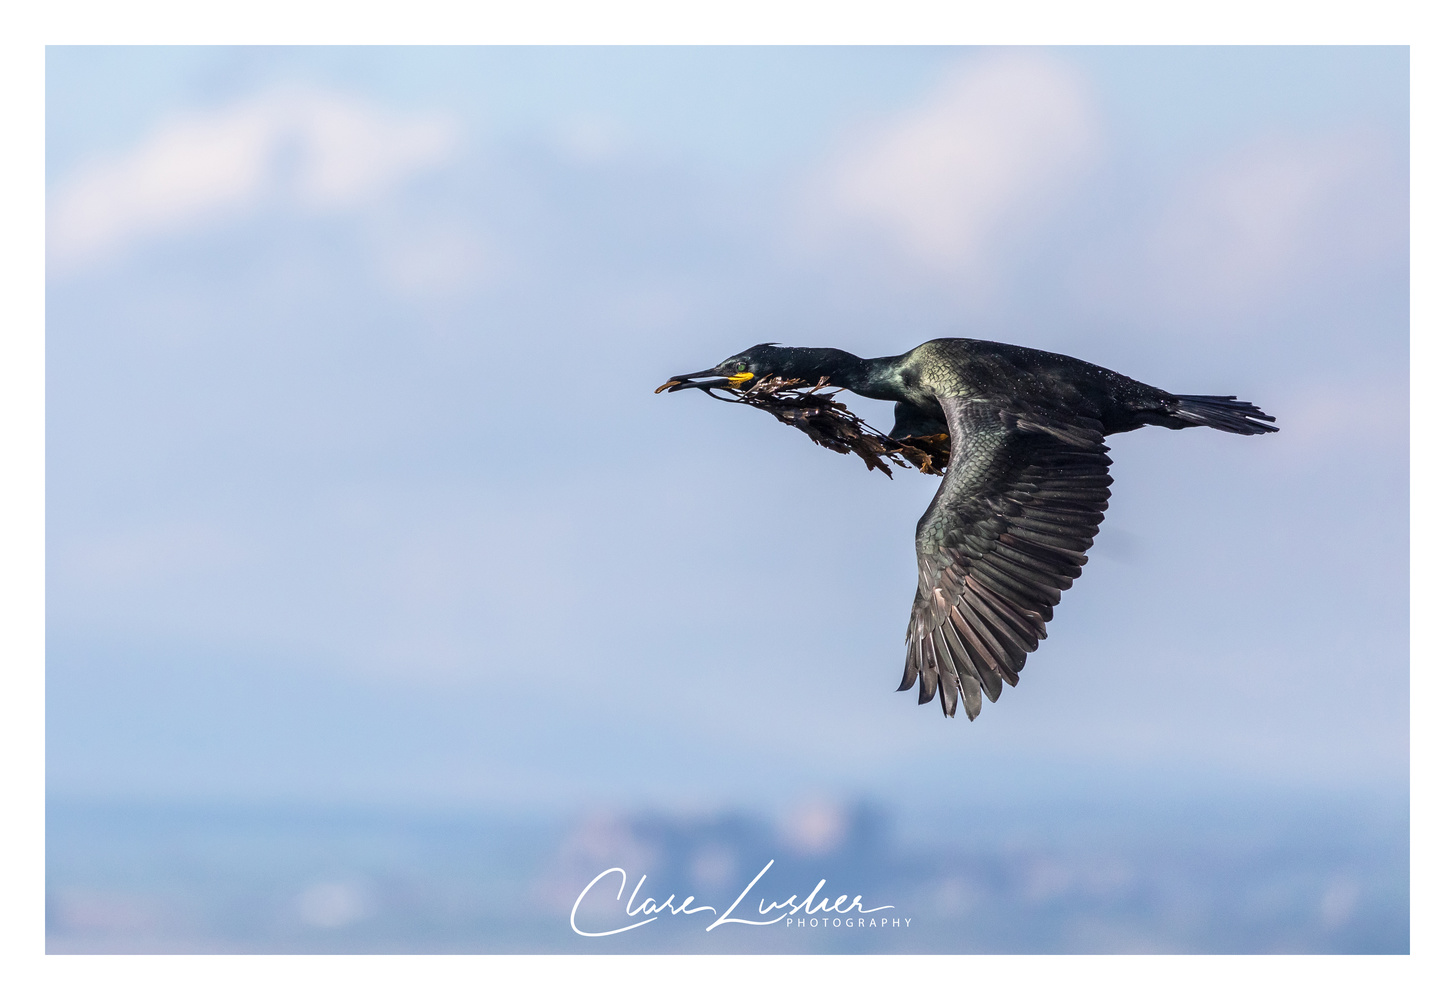 Shag by Clare Lusher